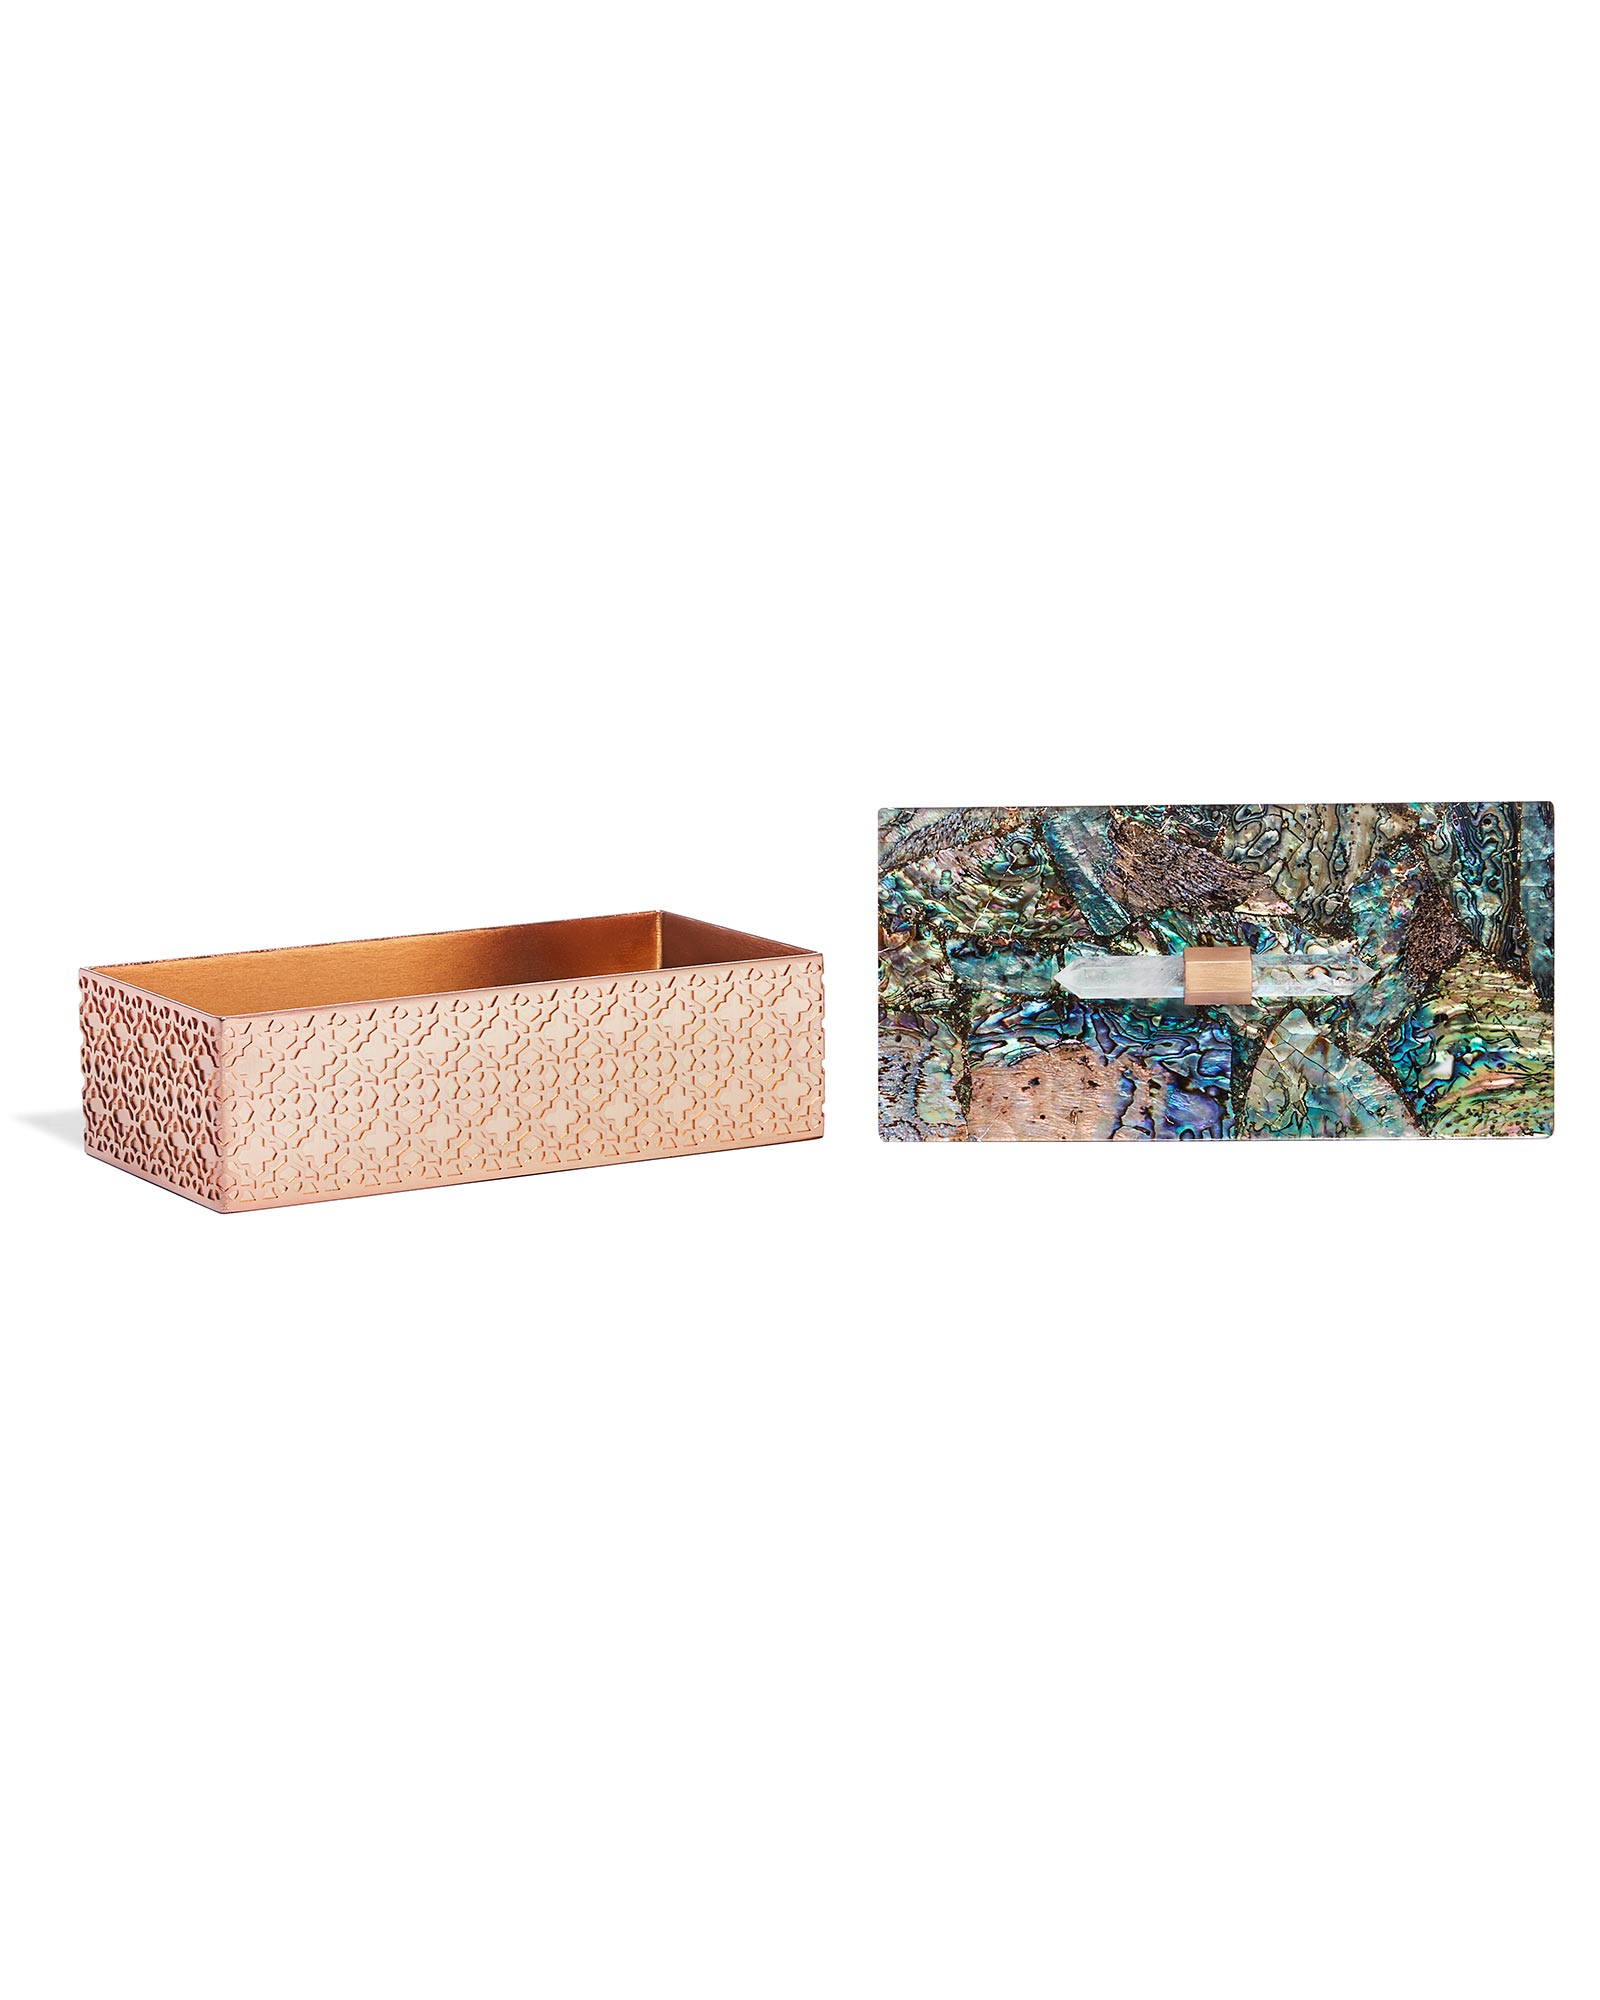 Rectangular Filigree Box in Crackle Abalone Shell